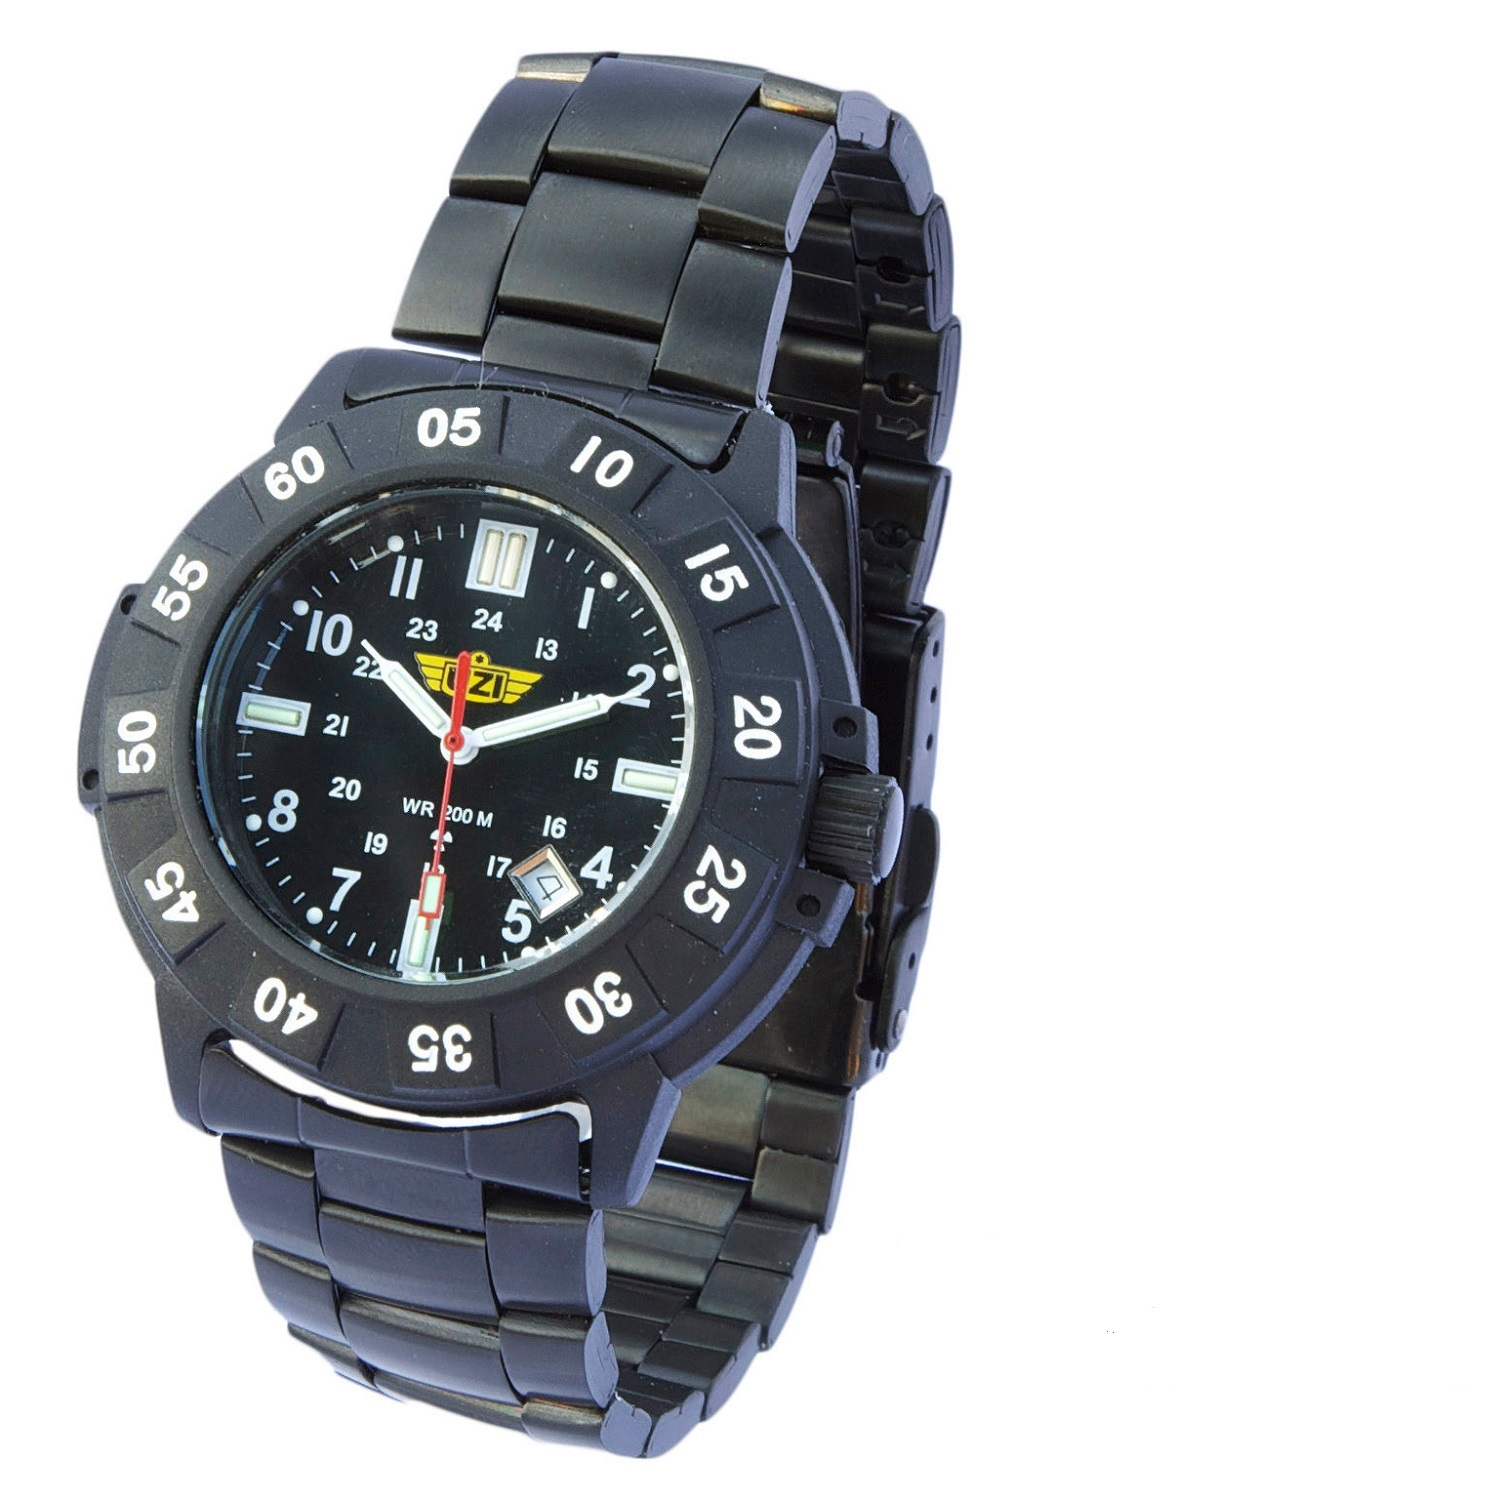 Uzi Protector Tritium H3 Watch with Metal Strap Black